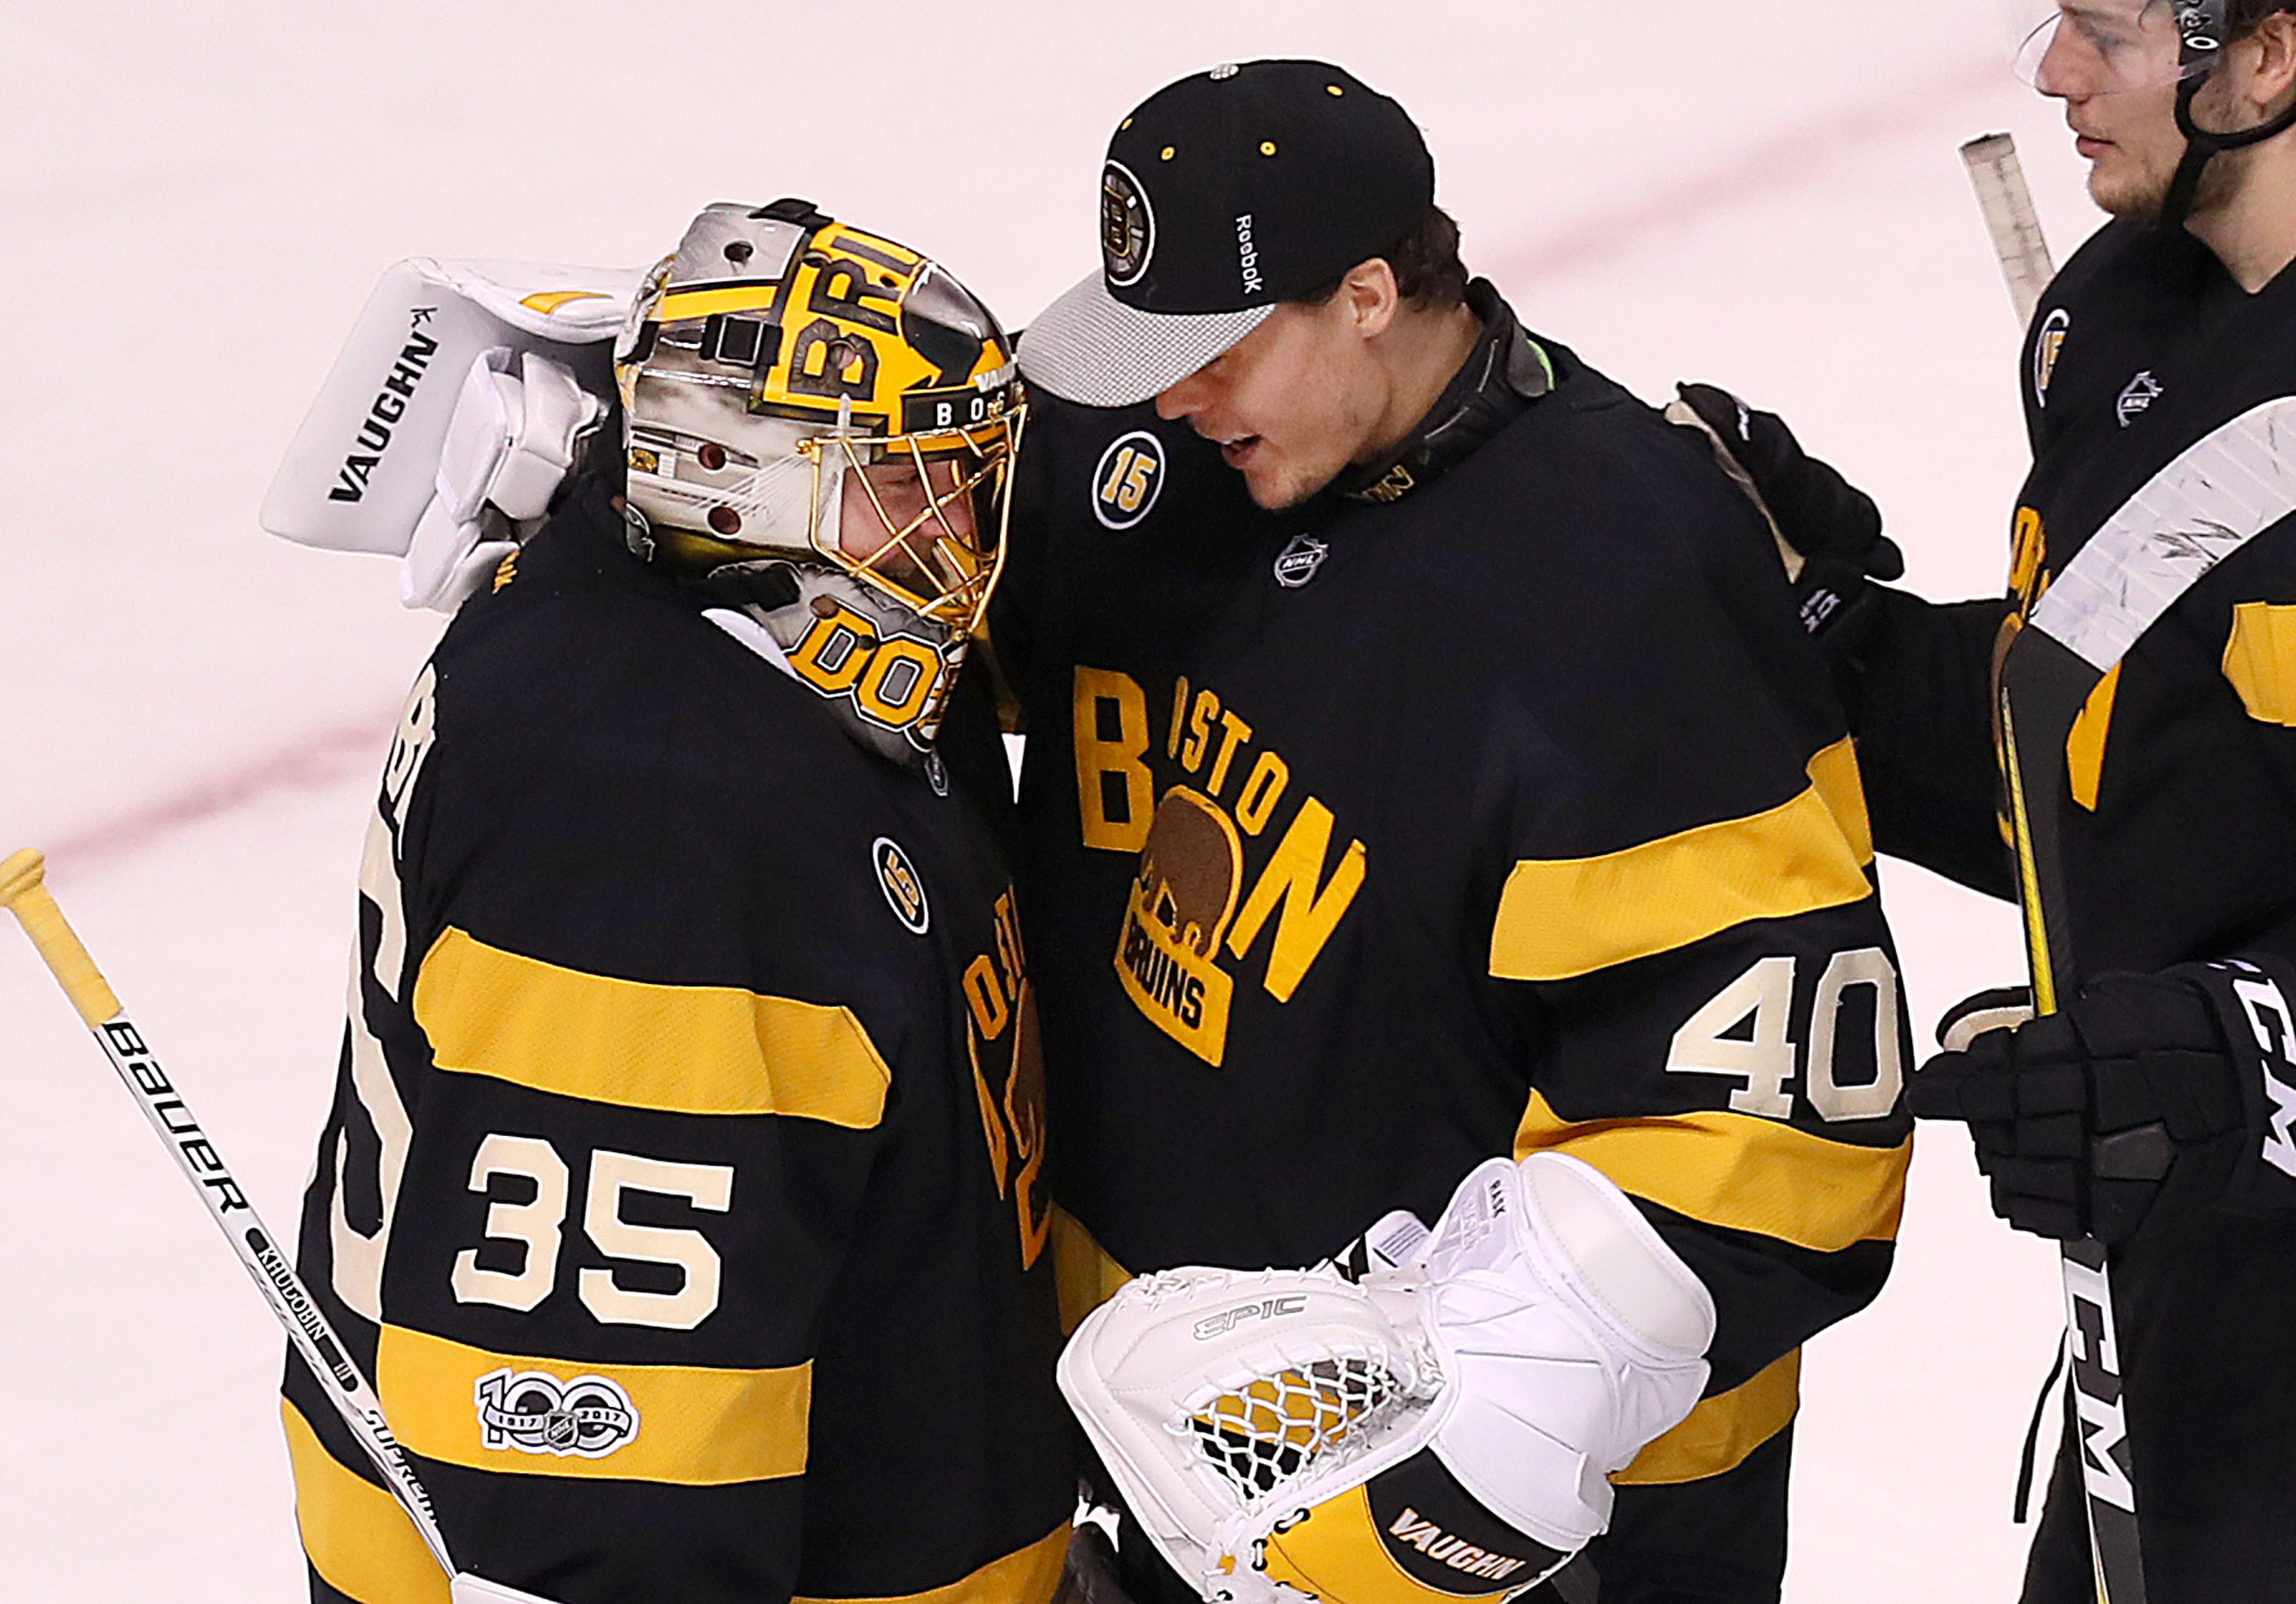 Bruins Notes: Tuukka Rask Stellar Again In Emphatic Win Over Islanders